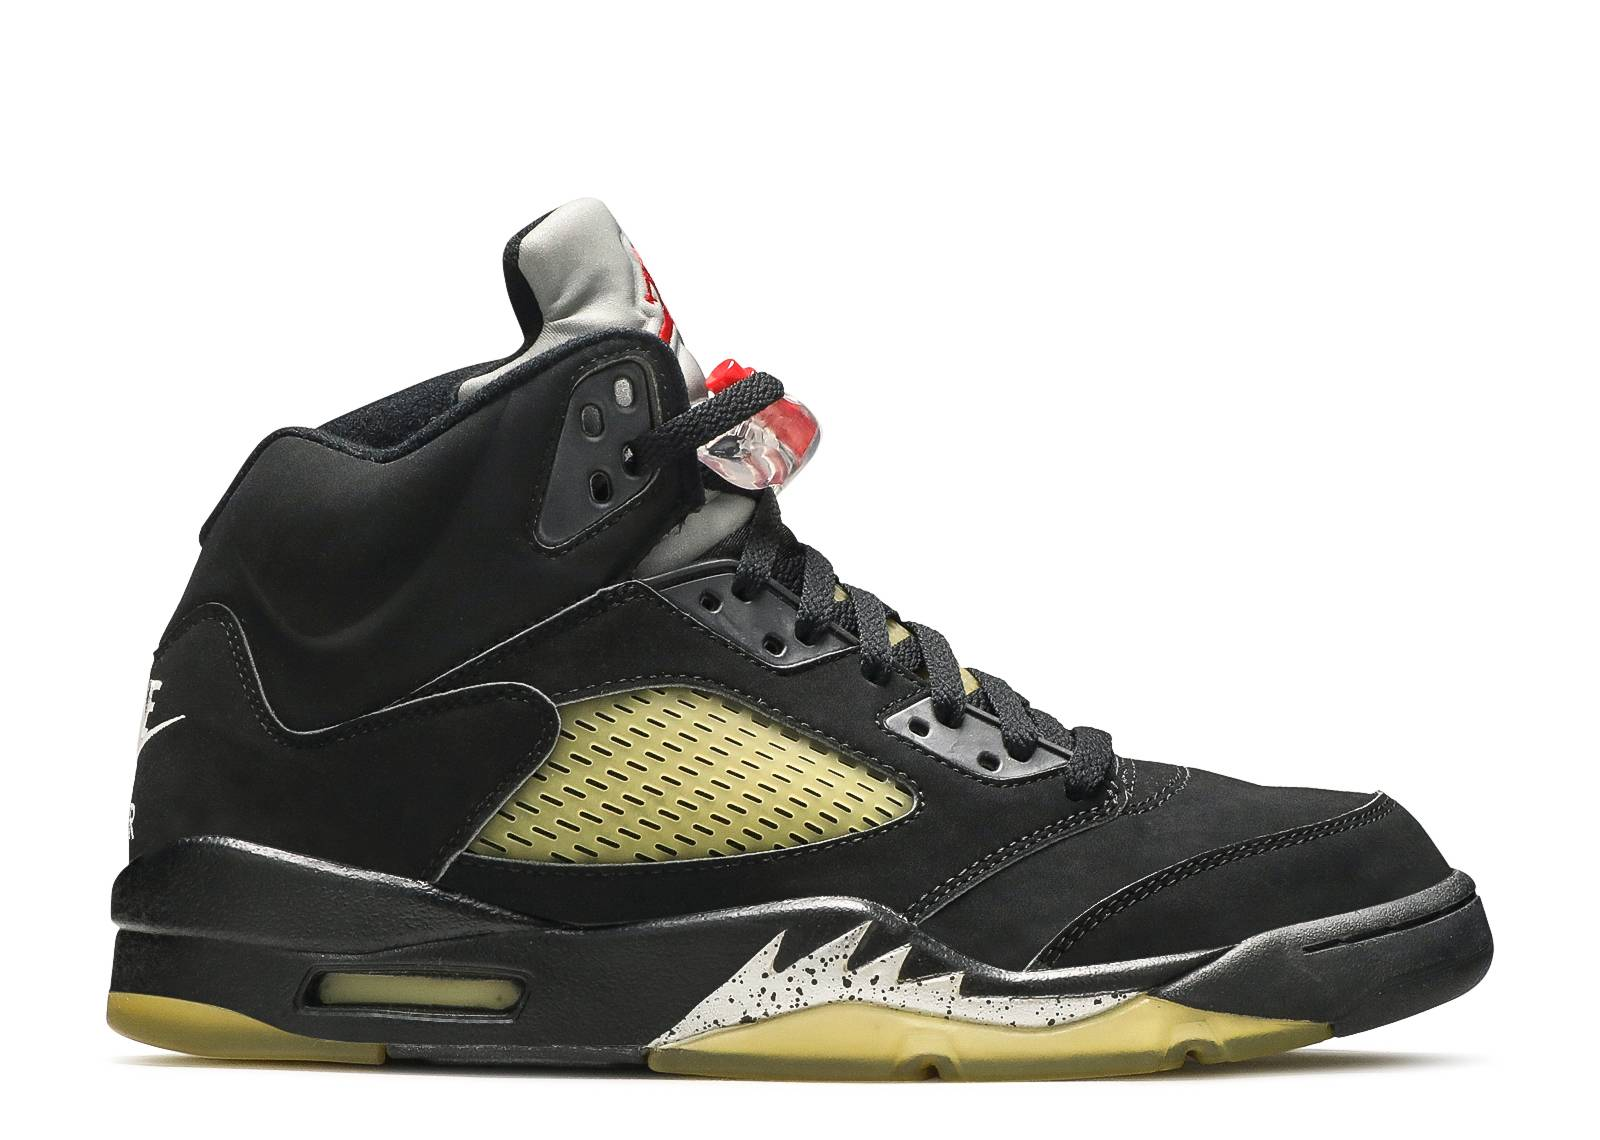 cb313fb7551f Air Jordan 5 Retro - Air Jordan - 136027 001 - black black-metallic ...